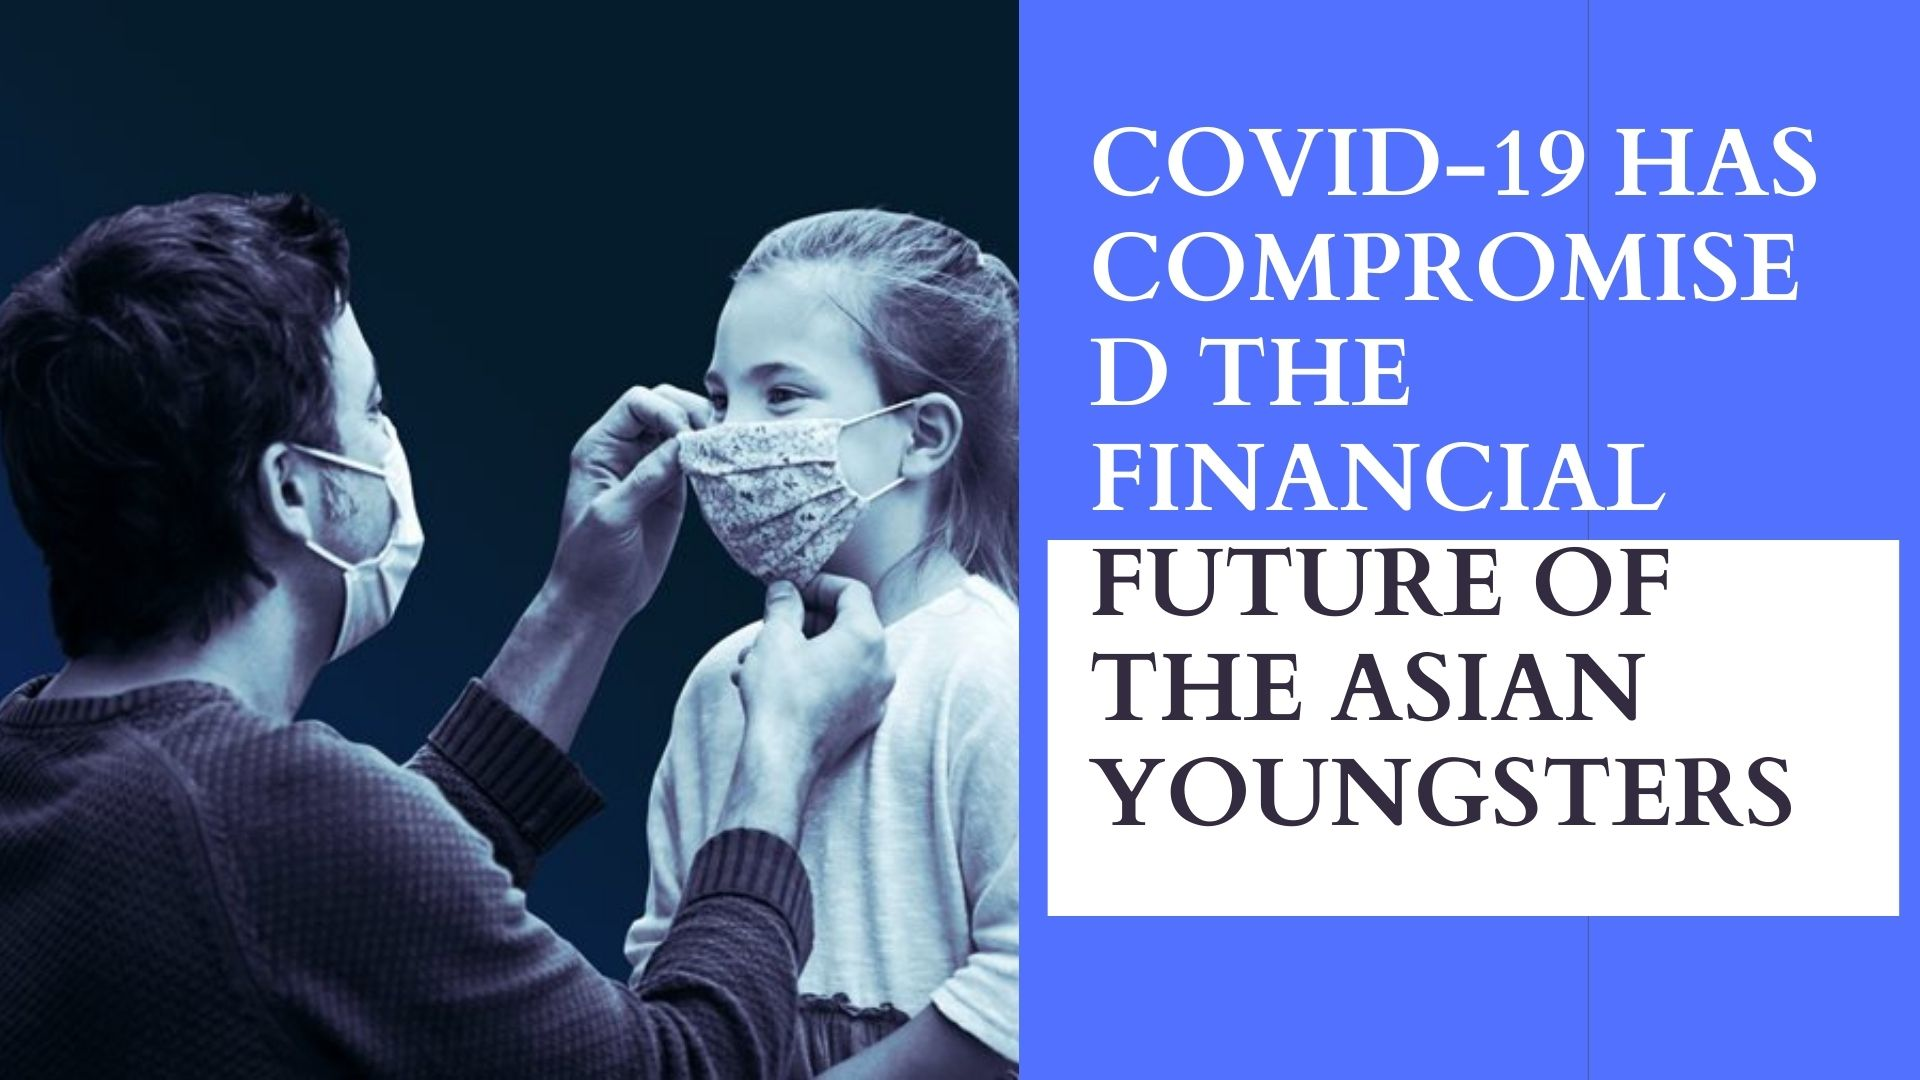 COVID-19 HAS COMPROMISED THE FINANCIAL FUTURE OF THE ASIAN YOUNGSTERS